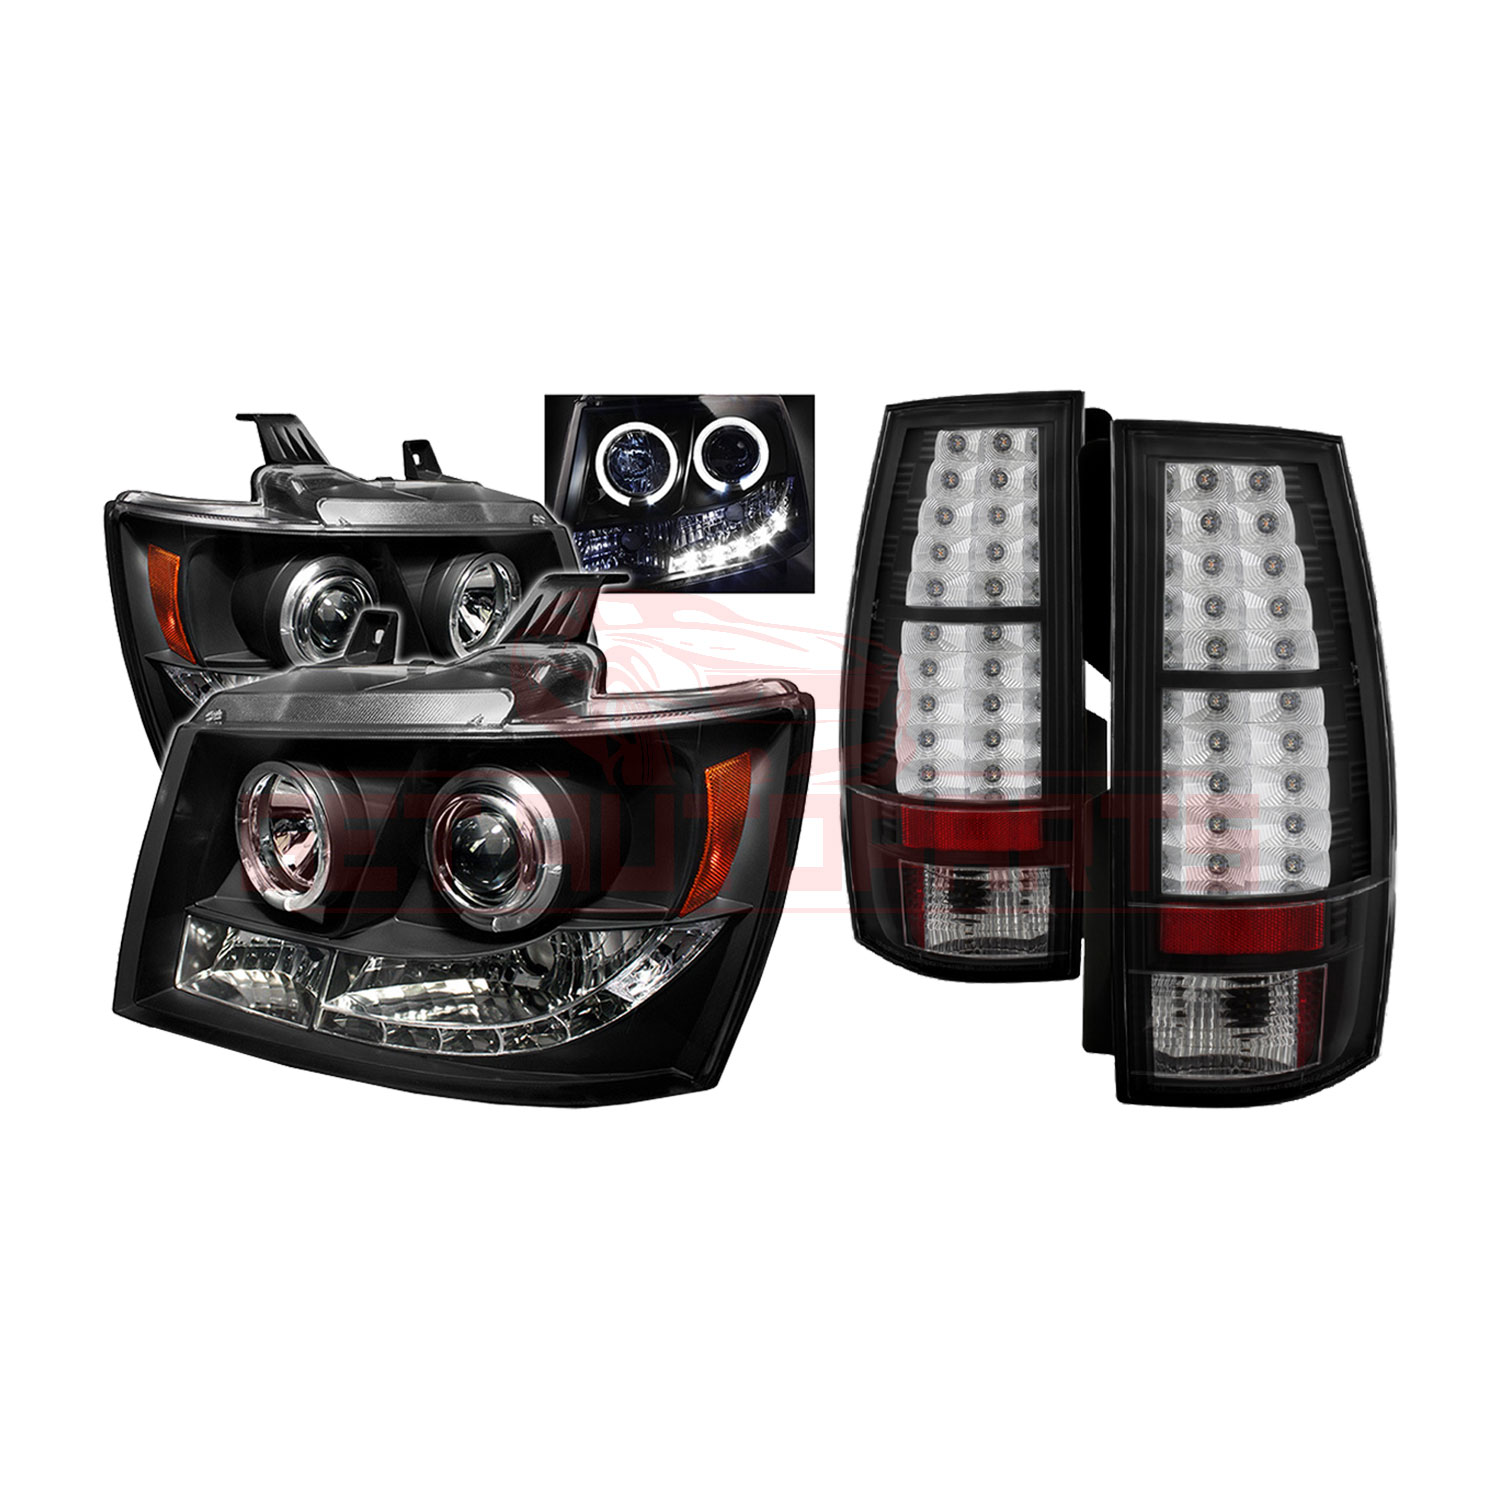 Spyder Halo LED Headlights & LED Tail Lights for Chevy Suburban/Tahoe 07-14 part in Headlight & Tail Light Covers category